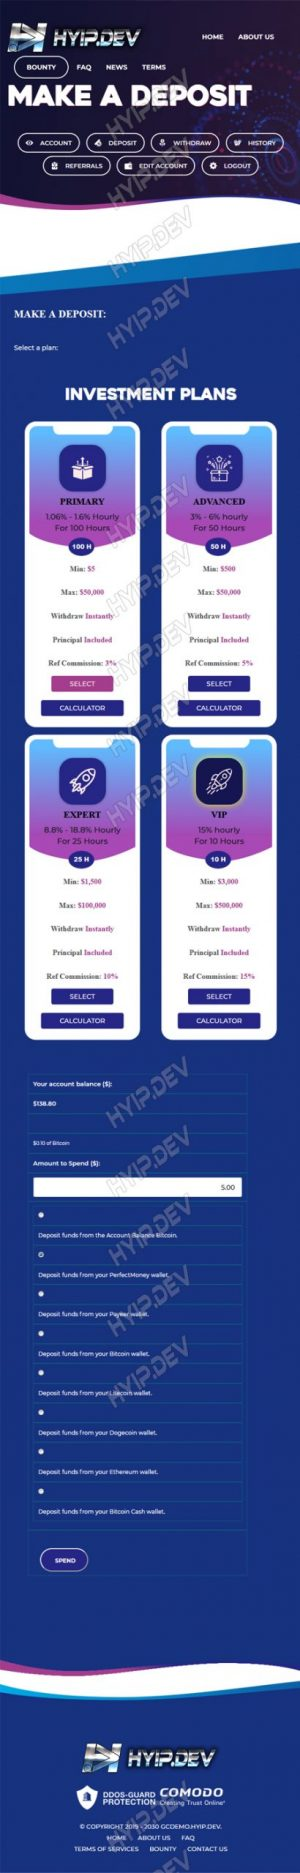 goldcoders hyip template no. 126, mobile page screenshot